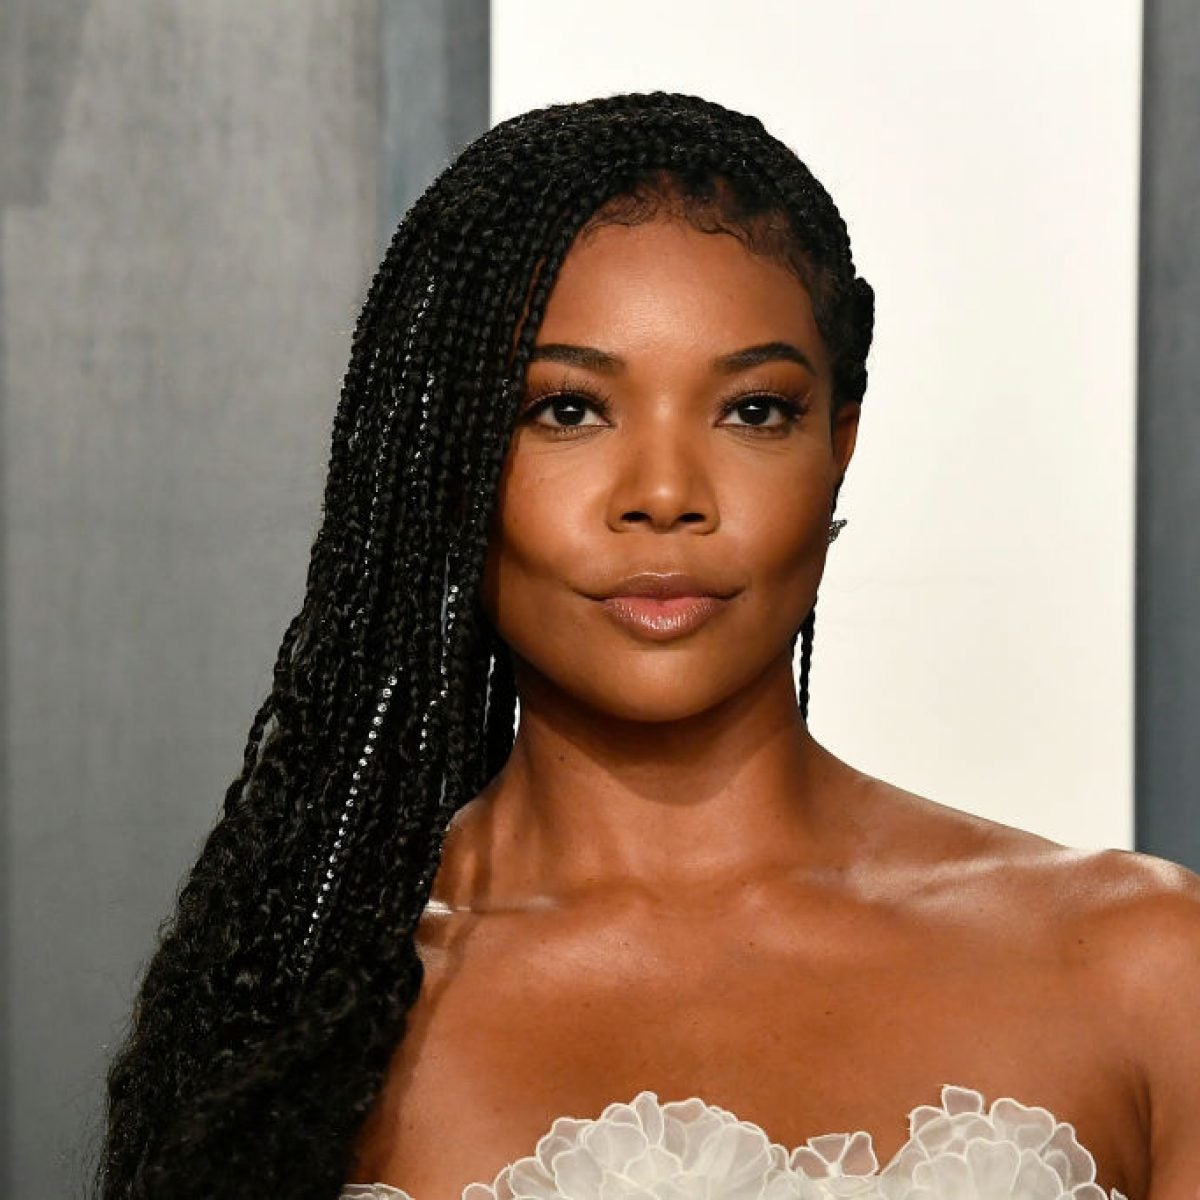 Gabrielle Union Talks Putting Hairstylists In Her Contract 'So There Can Be No Funny Business'